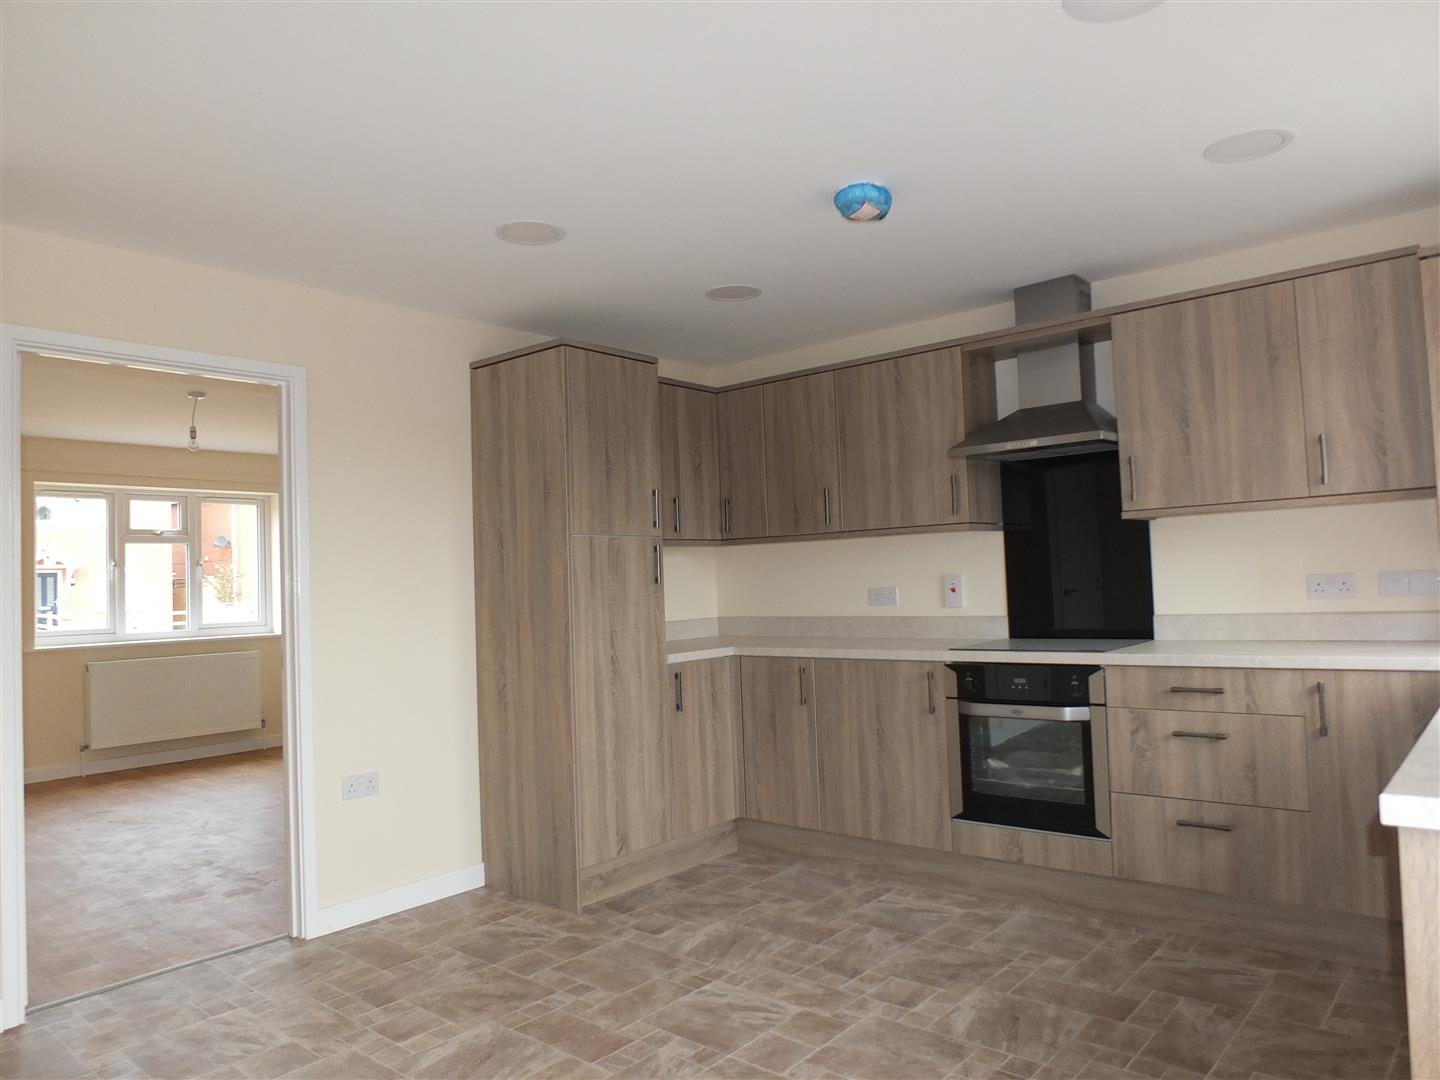 3 bed house to rent in Little London, Long Sutton 6